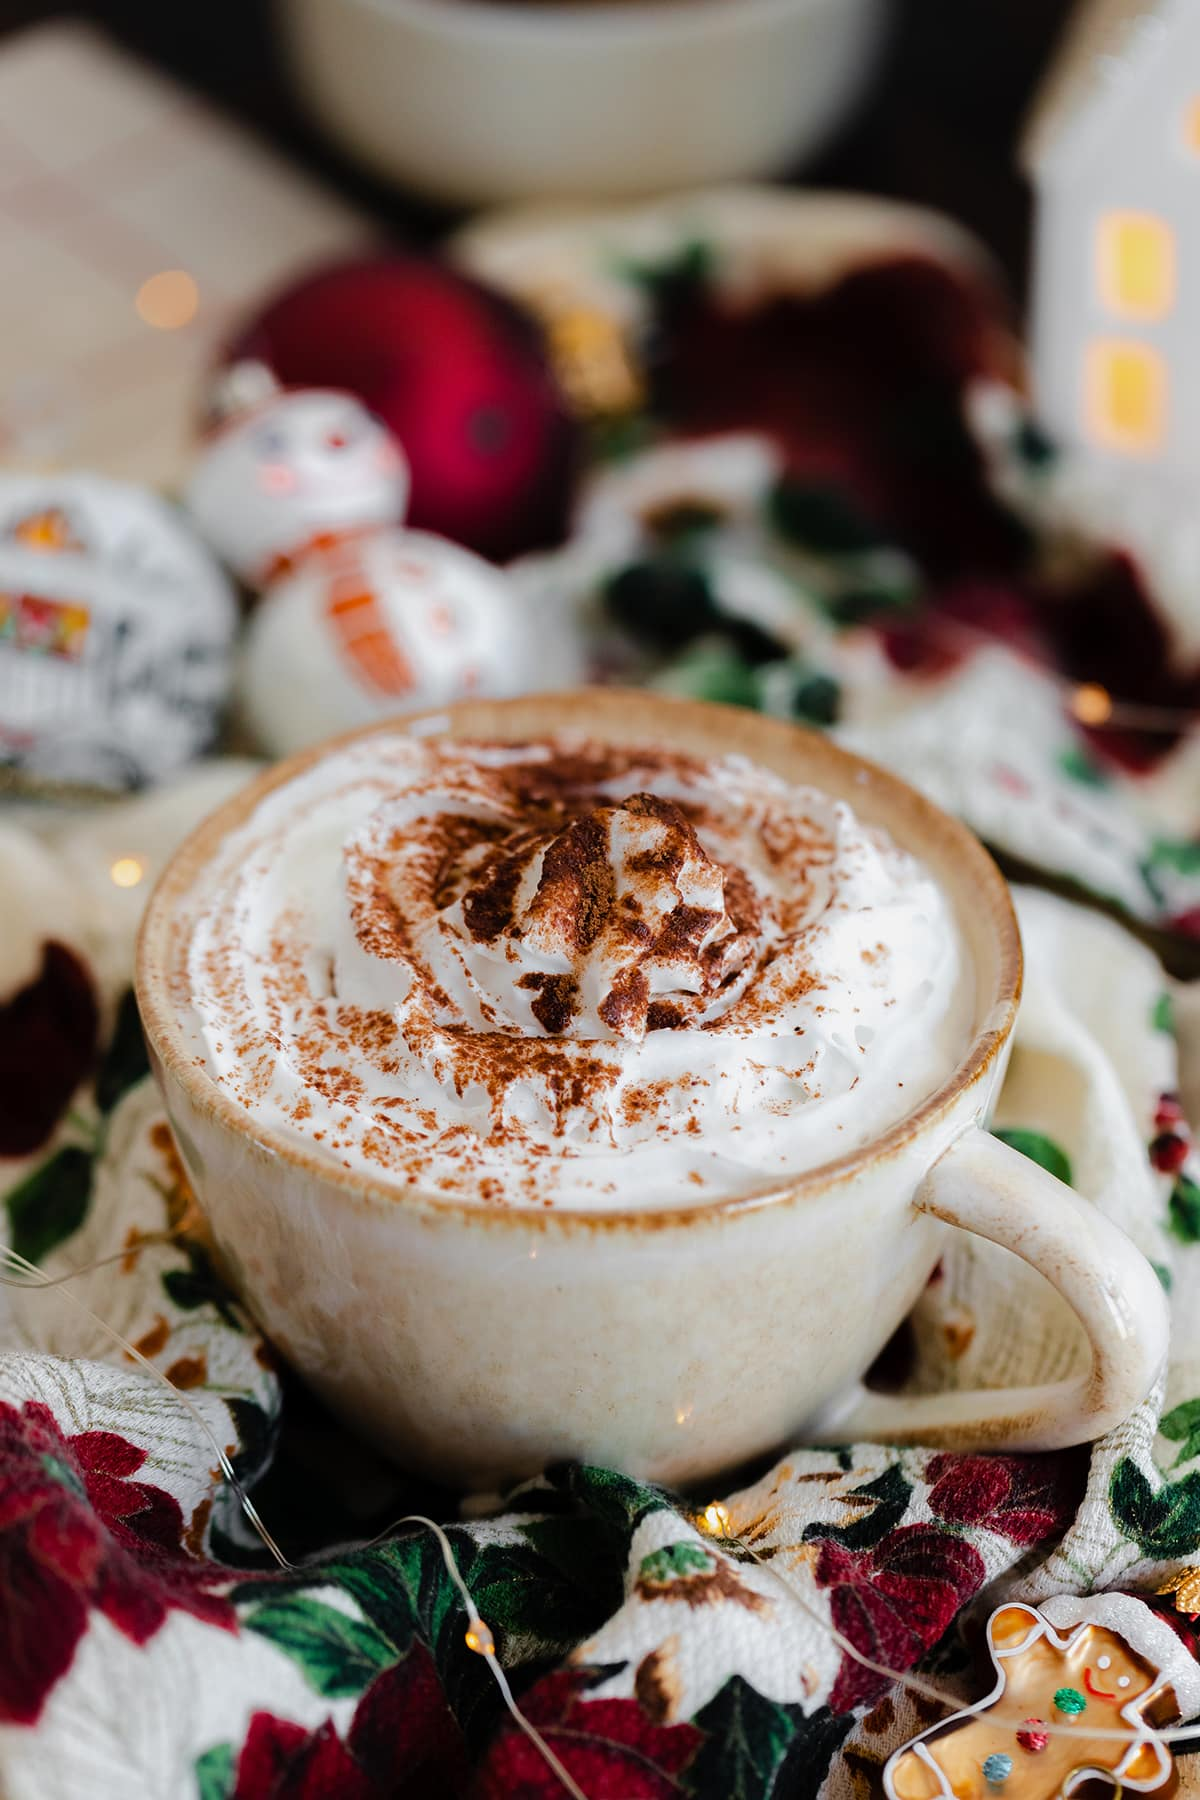 A shot of Christmas Spiced Hot Chocolate with whipped cream, dusted with gingerbread spice in a beige cup.